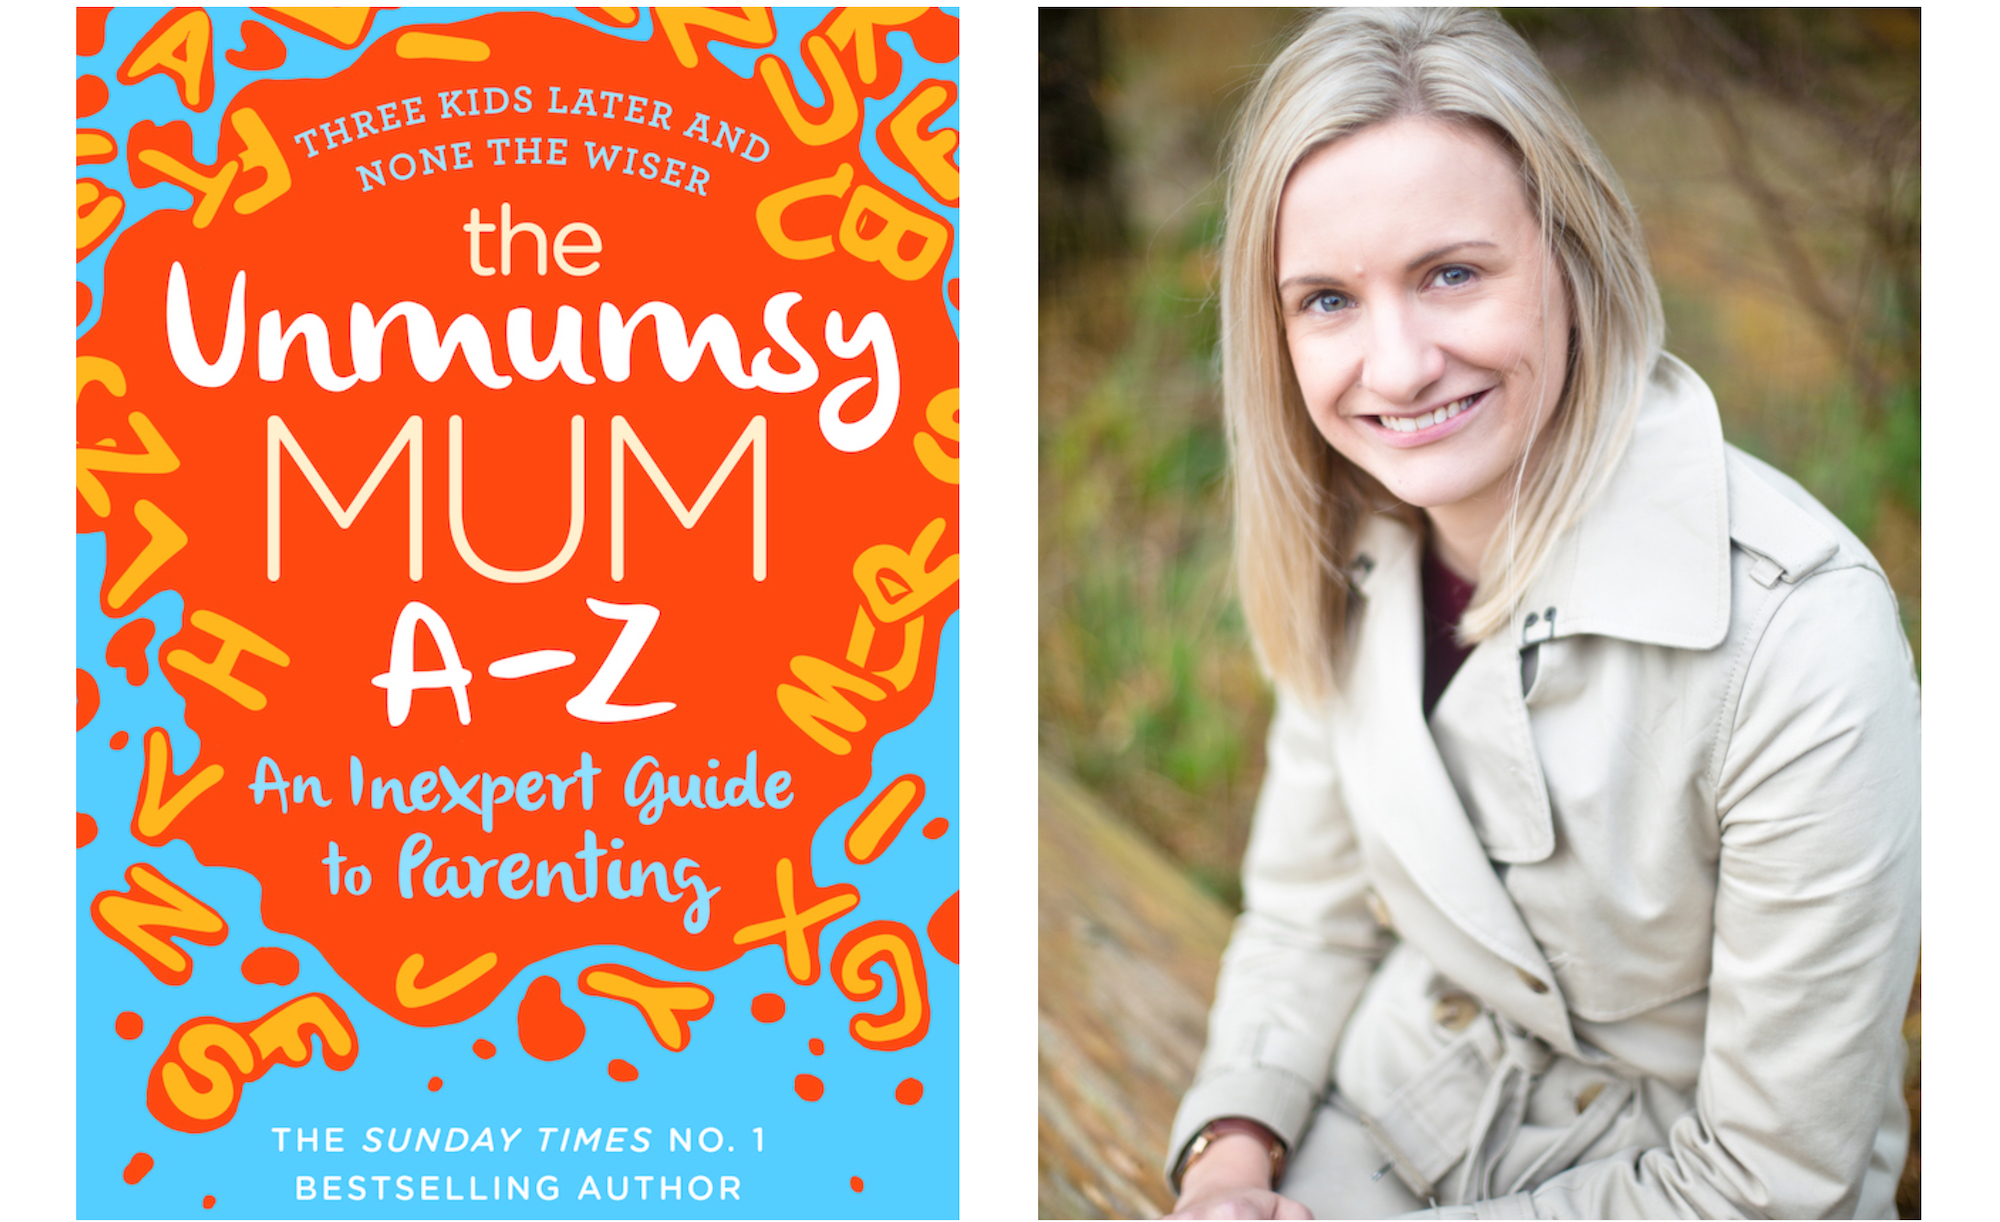 The Unmumsy Mum A-Z – An Inexpert Guide to Parenting